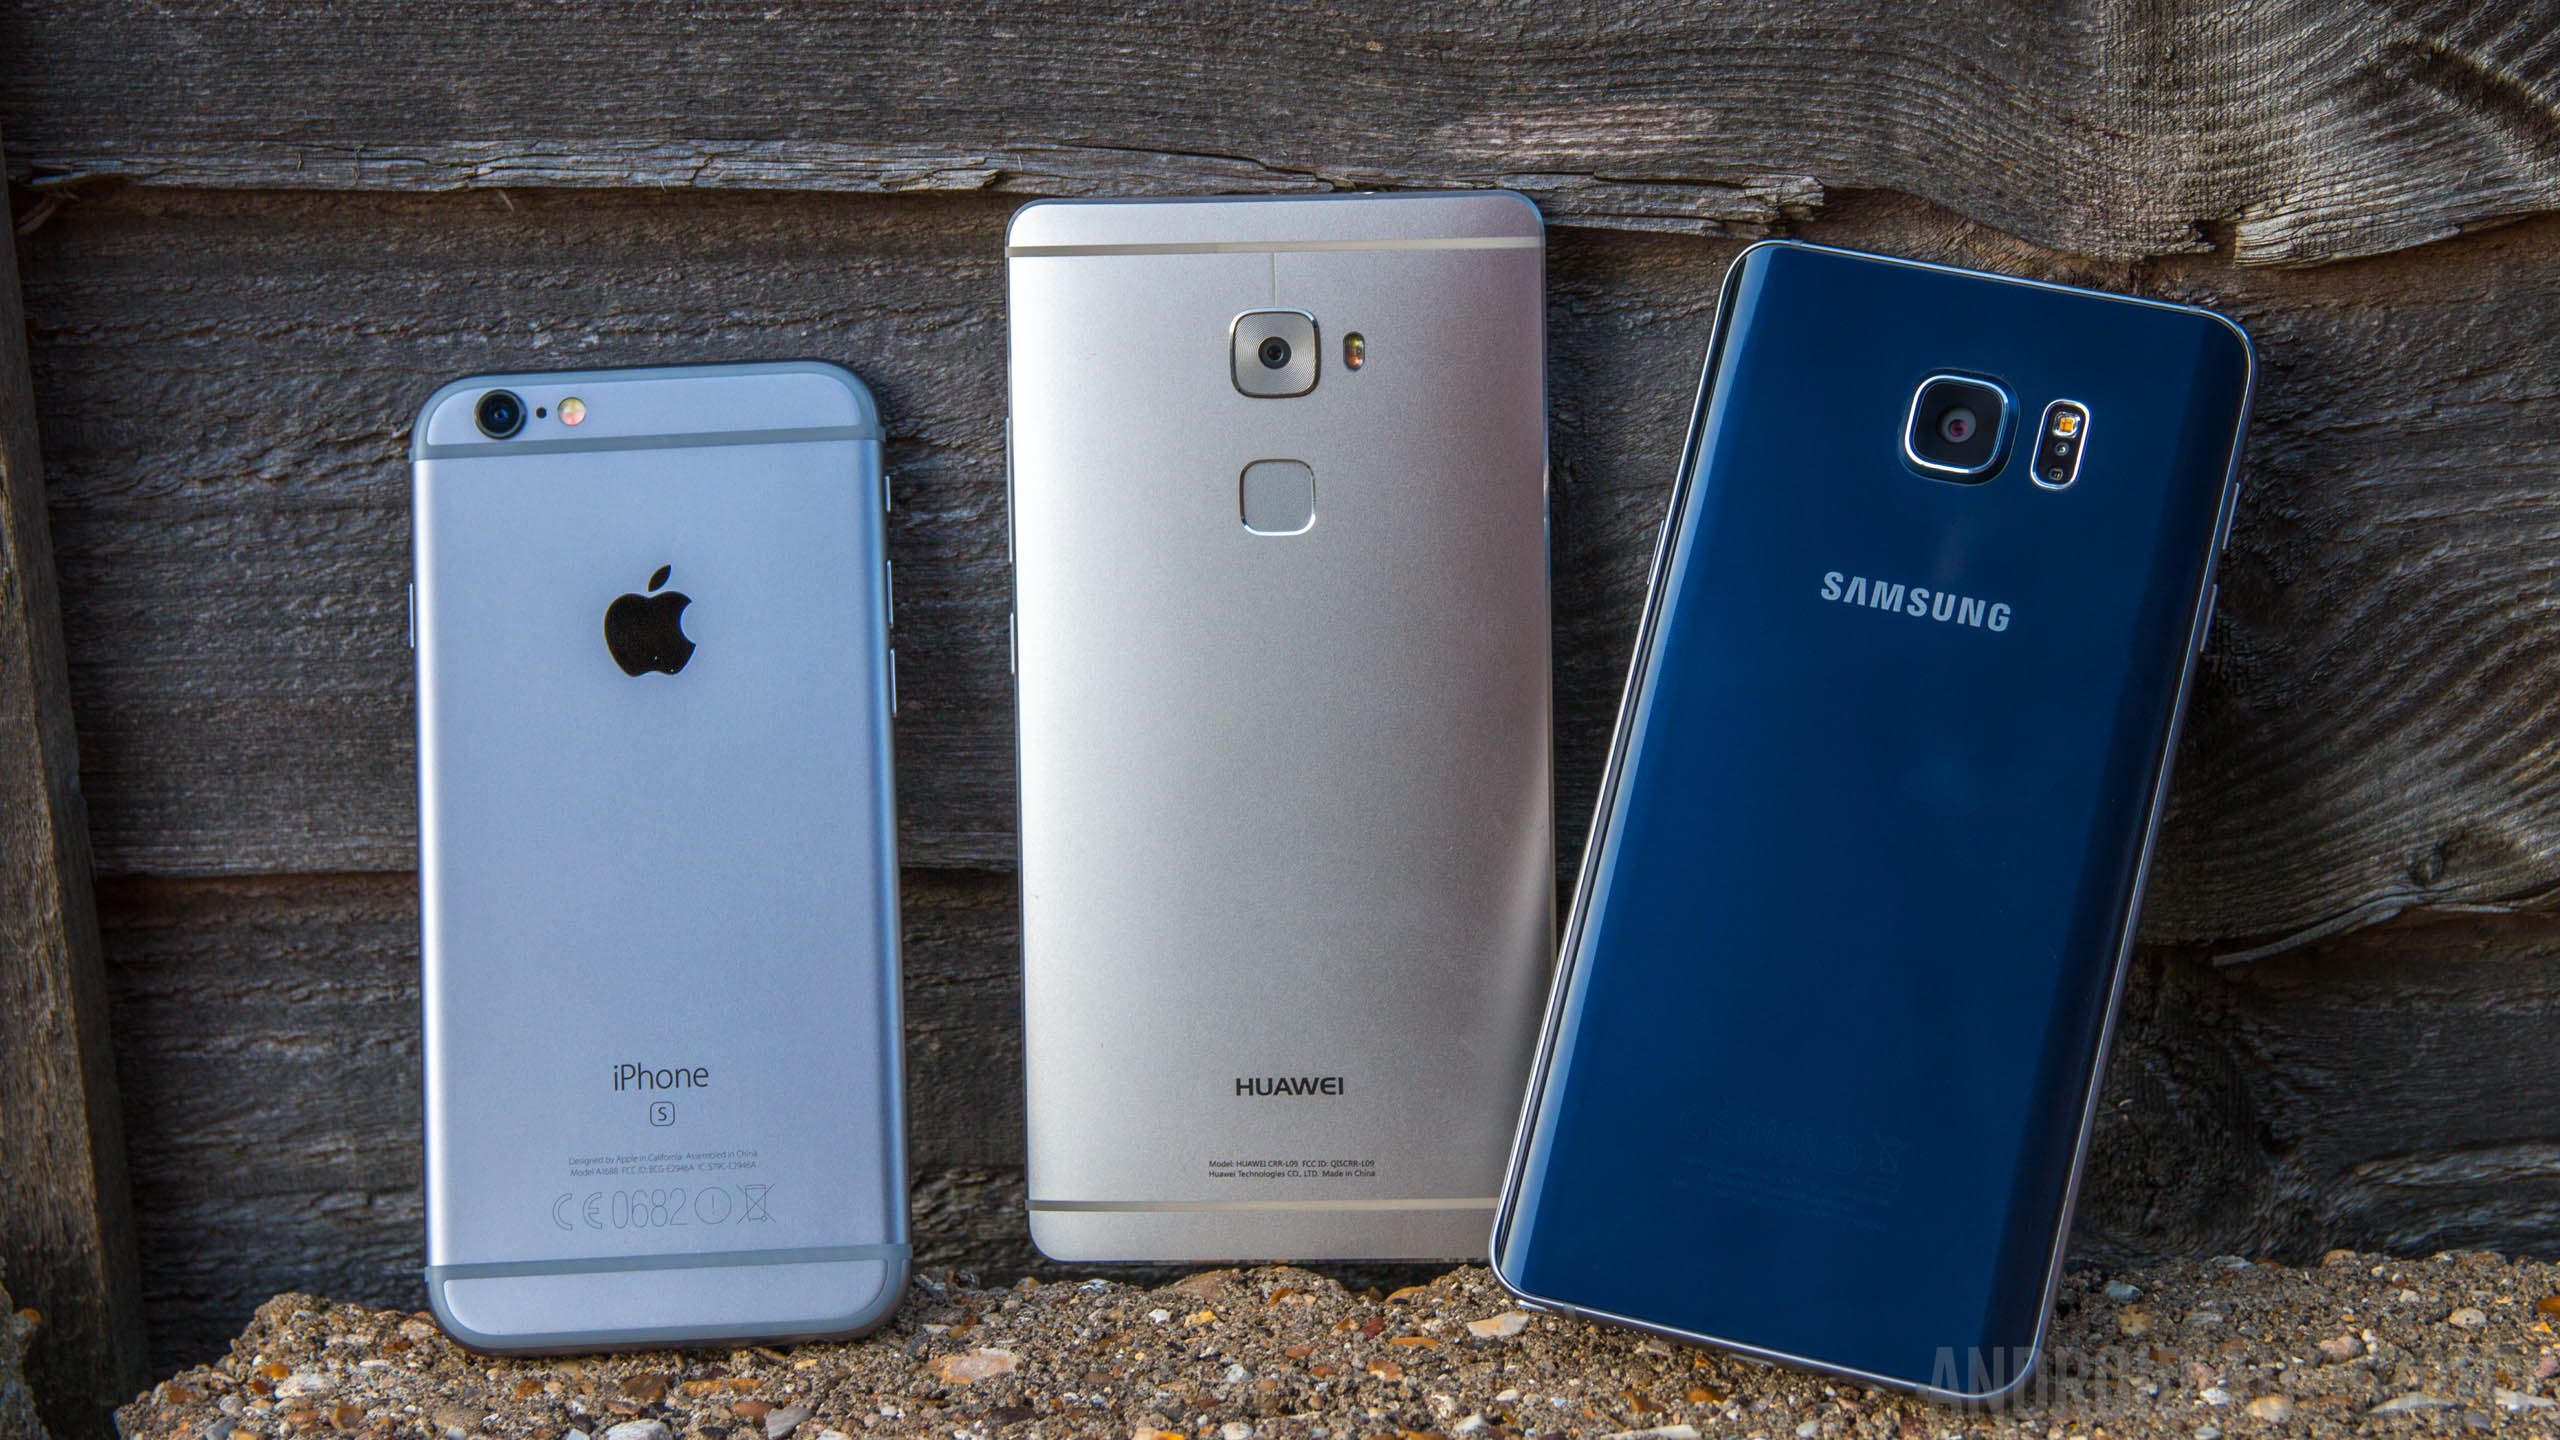 Galaxy Note 5 Vs Mate S Vs Iphone 6s - Mate S Vs Honor 8 , HD Wallpaper & Backgrounds